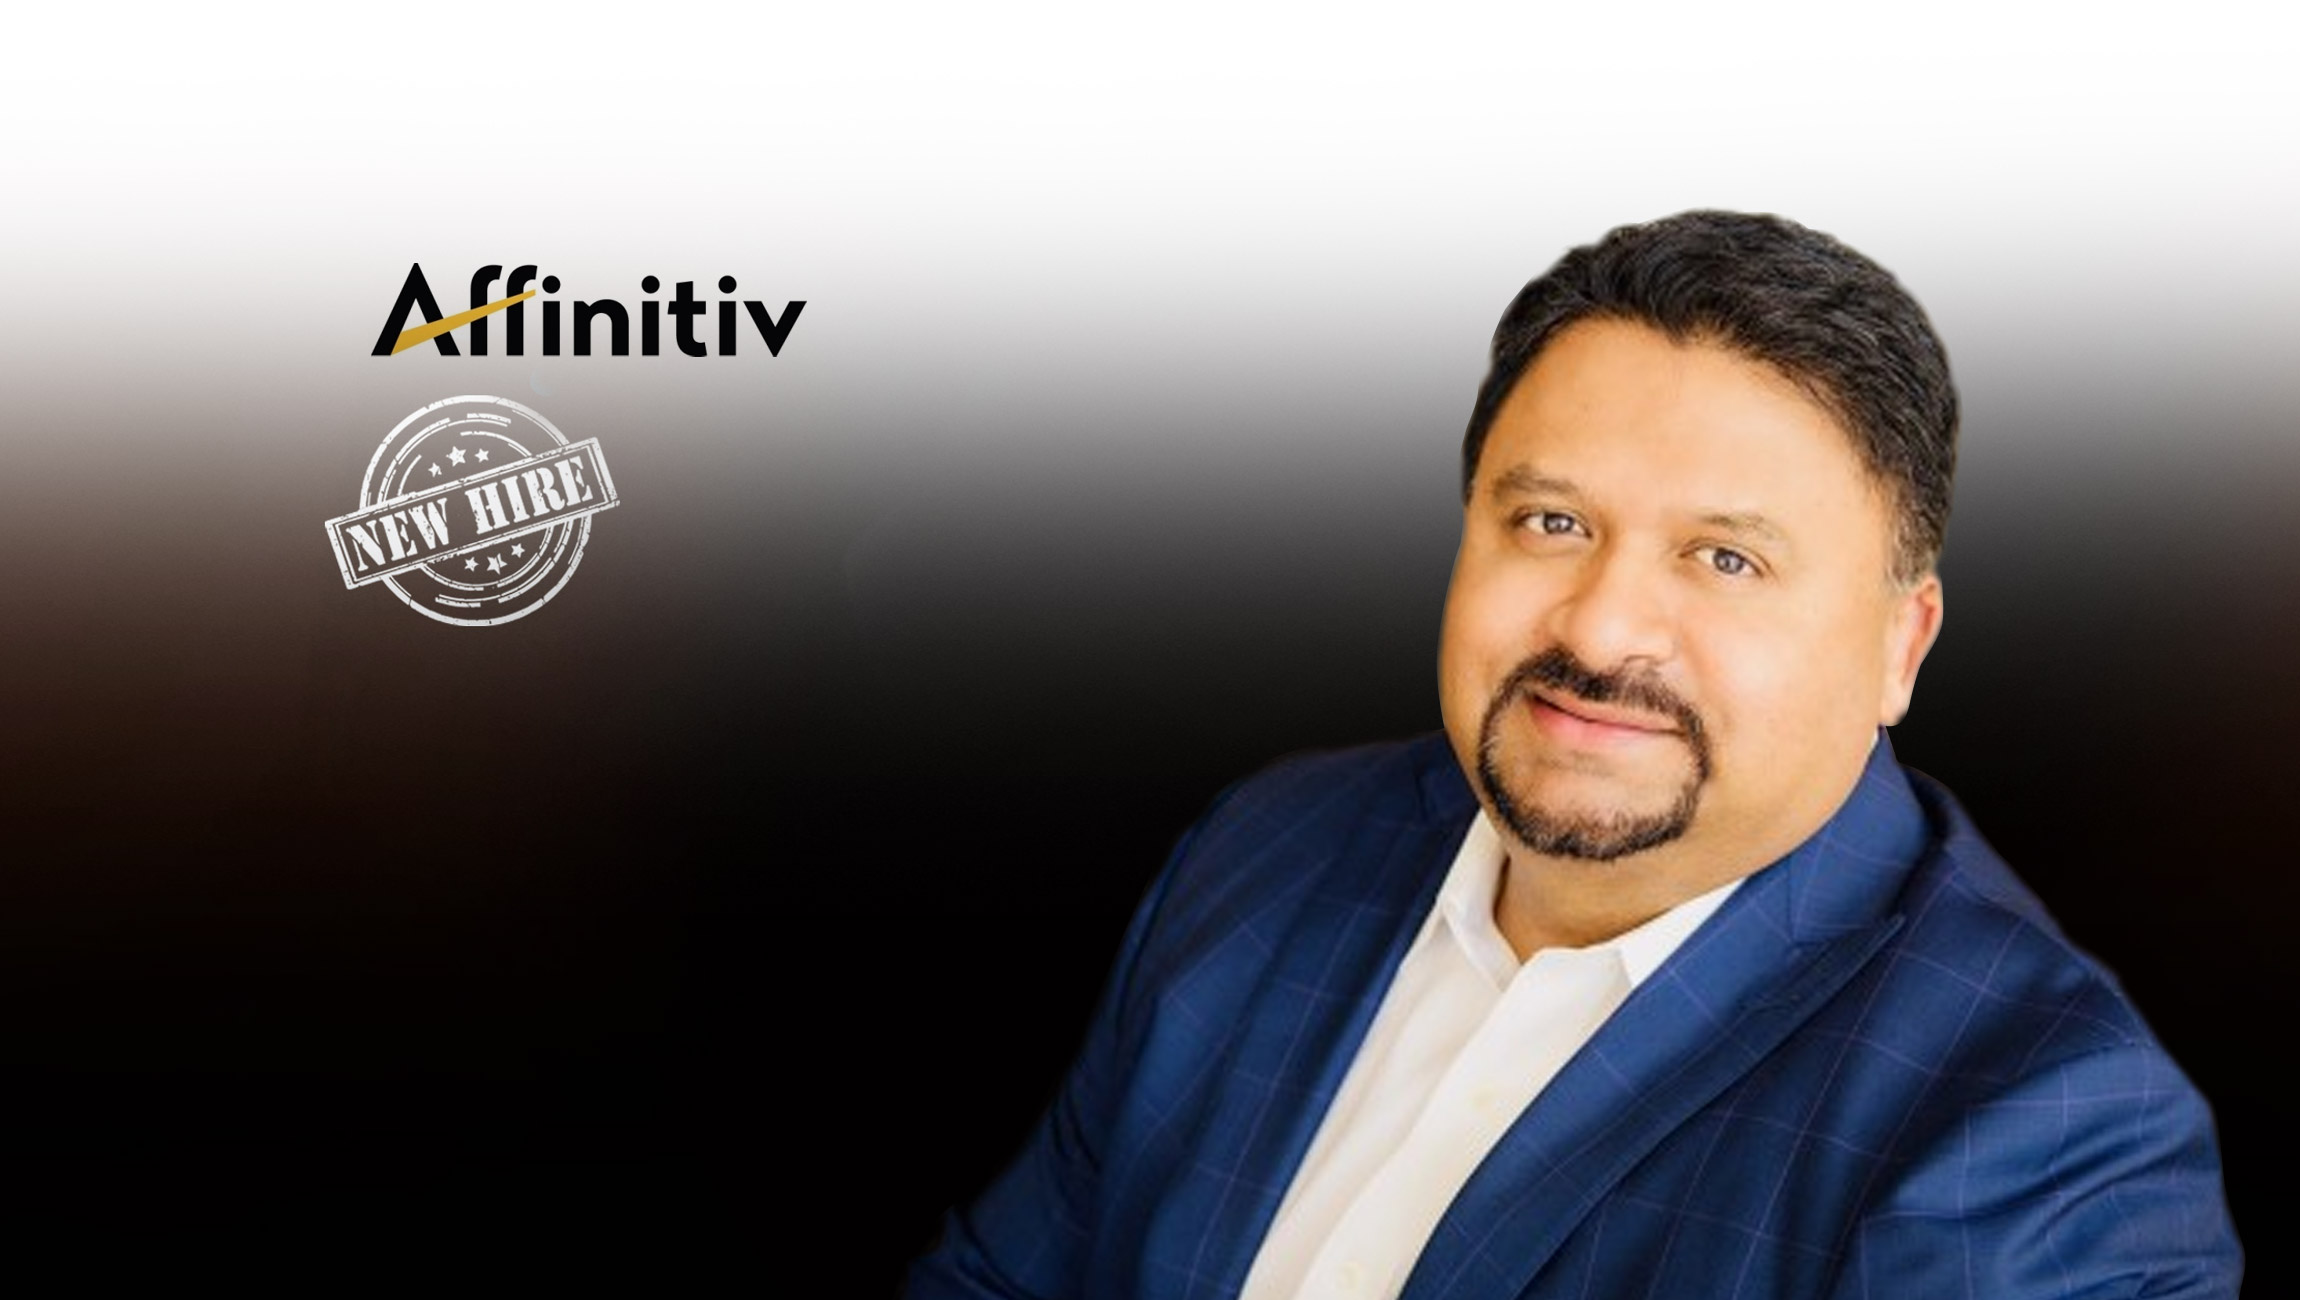 Affinitiv Announces New CEO to Lead the Company's Next Phase of Transformative Growth